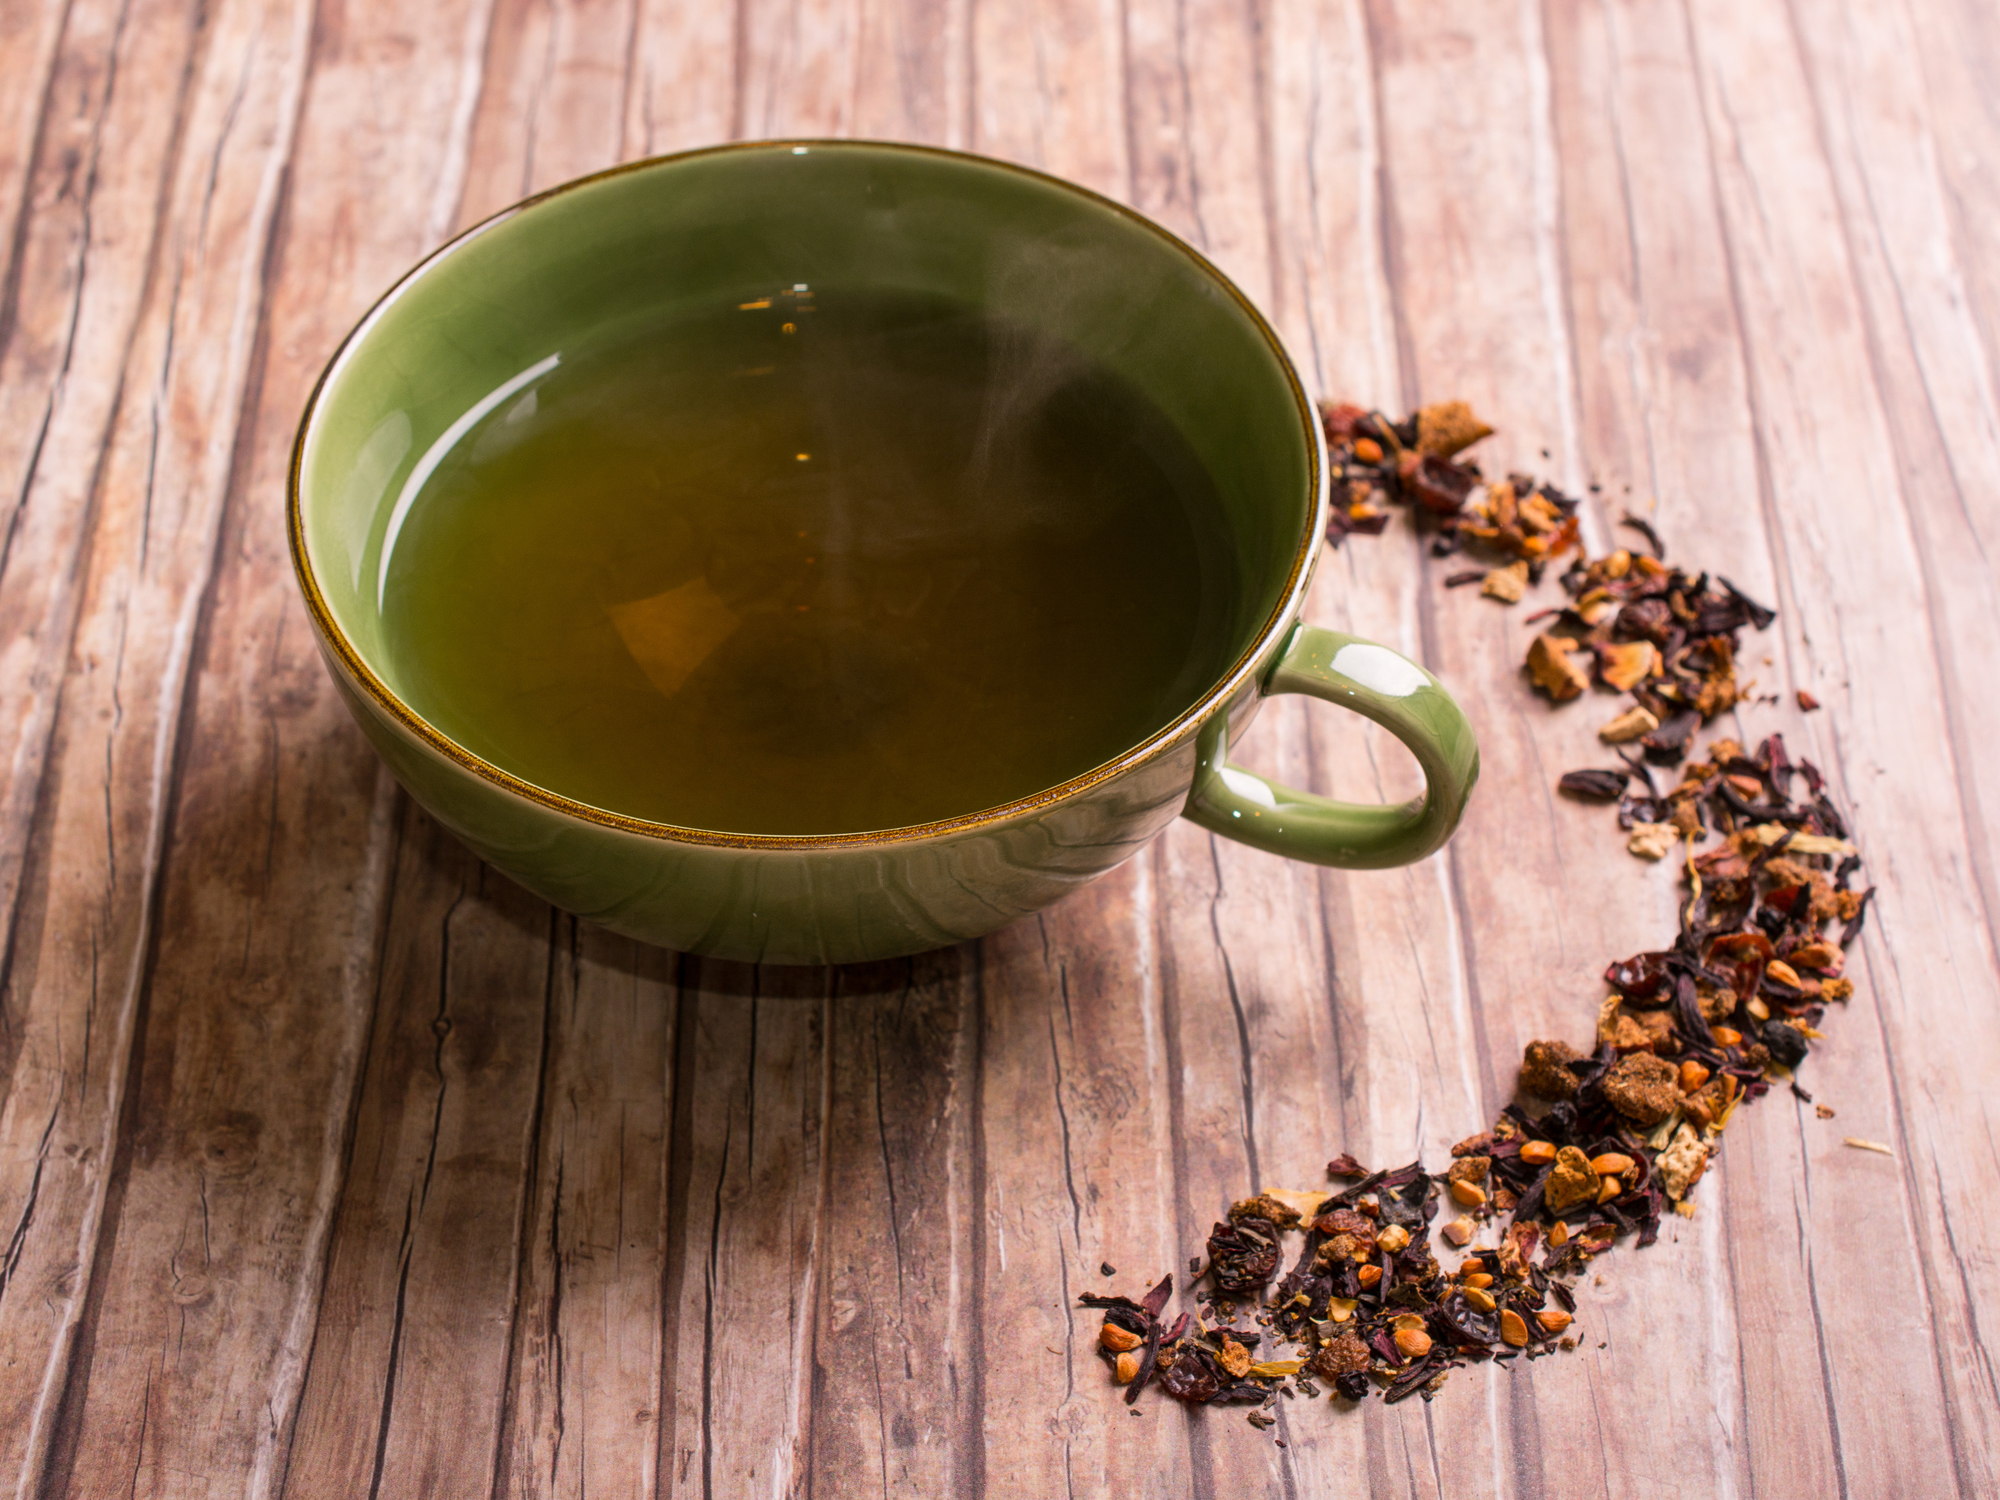 Tea time: Sip away stroke and cholesterol